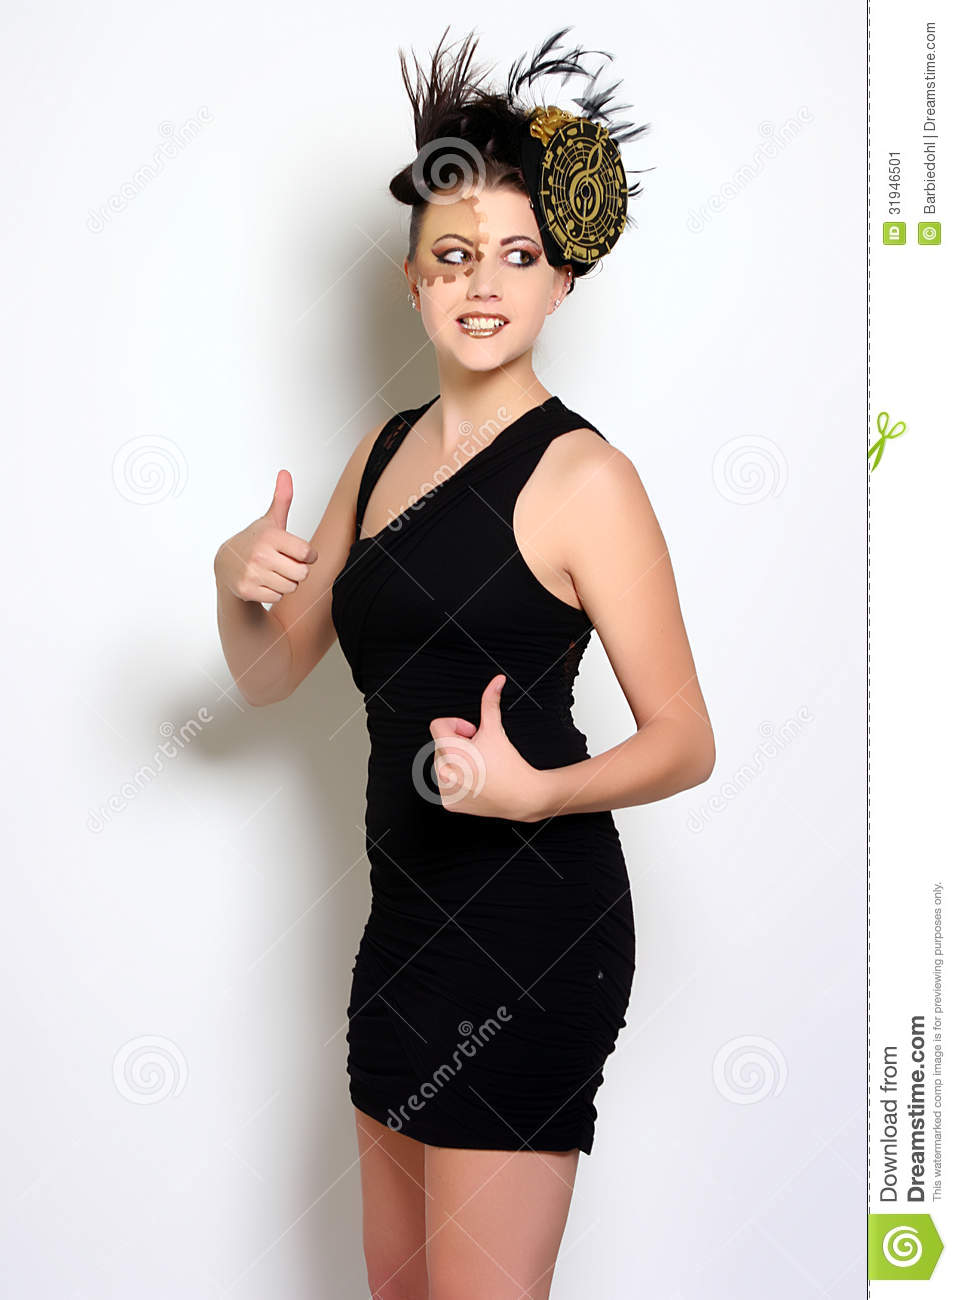 Brilliant Woman Black Dress Hand Chin Look Up Stock Photography  Image